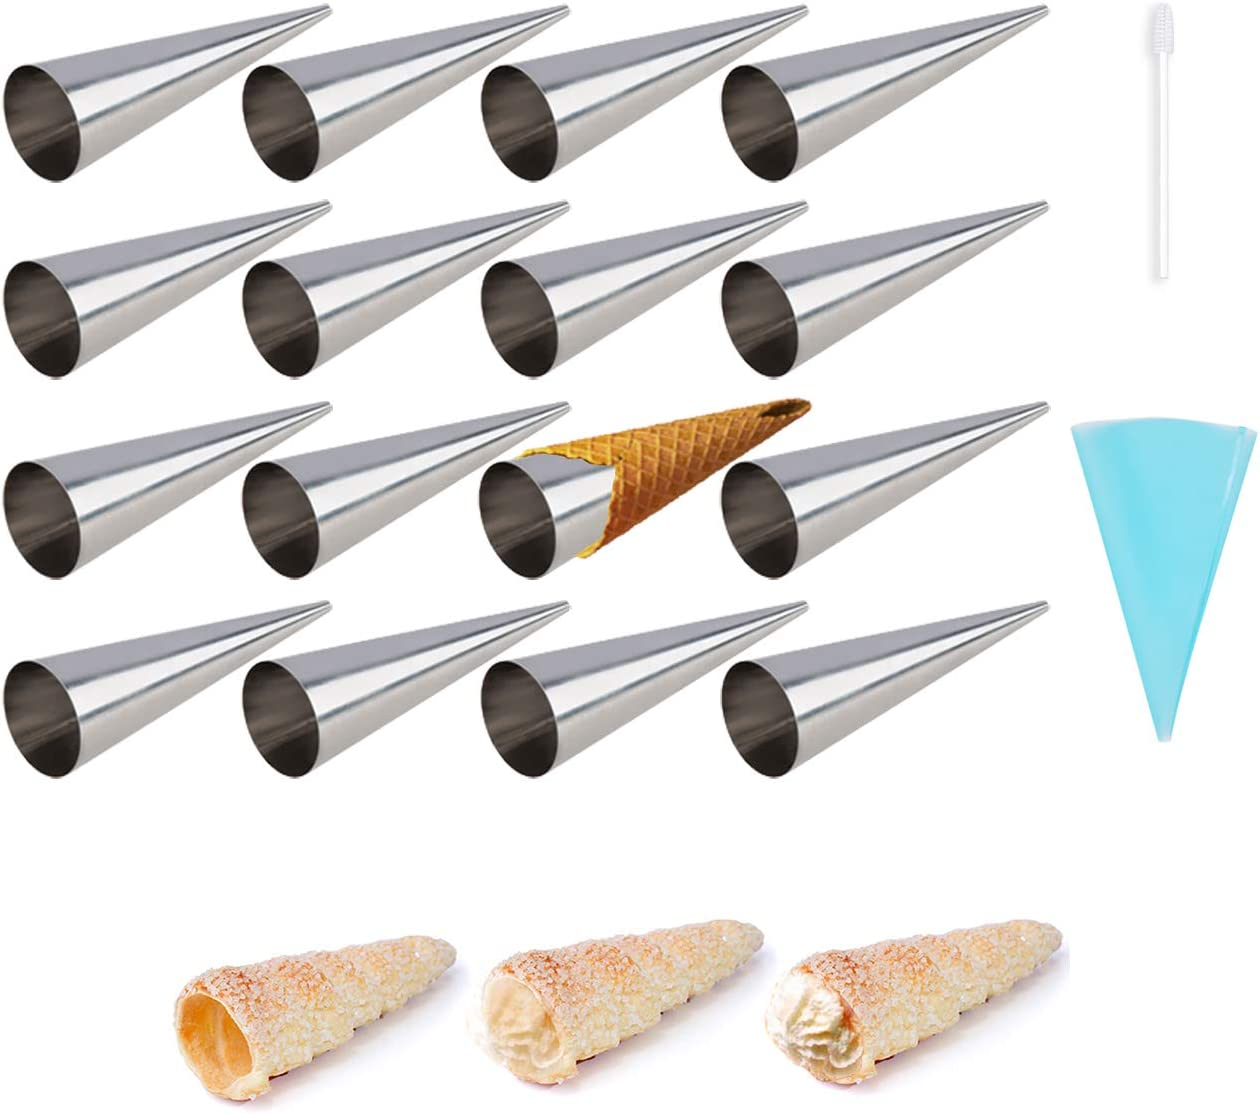 20 Pack Cream Horn Molds,Tissir 3 Inch Baking Cones Cream Horn Forms Free Standing Cone Shape Stainless Steel Lady Lock Cannoli Tubes Ice Cream Mold